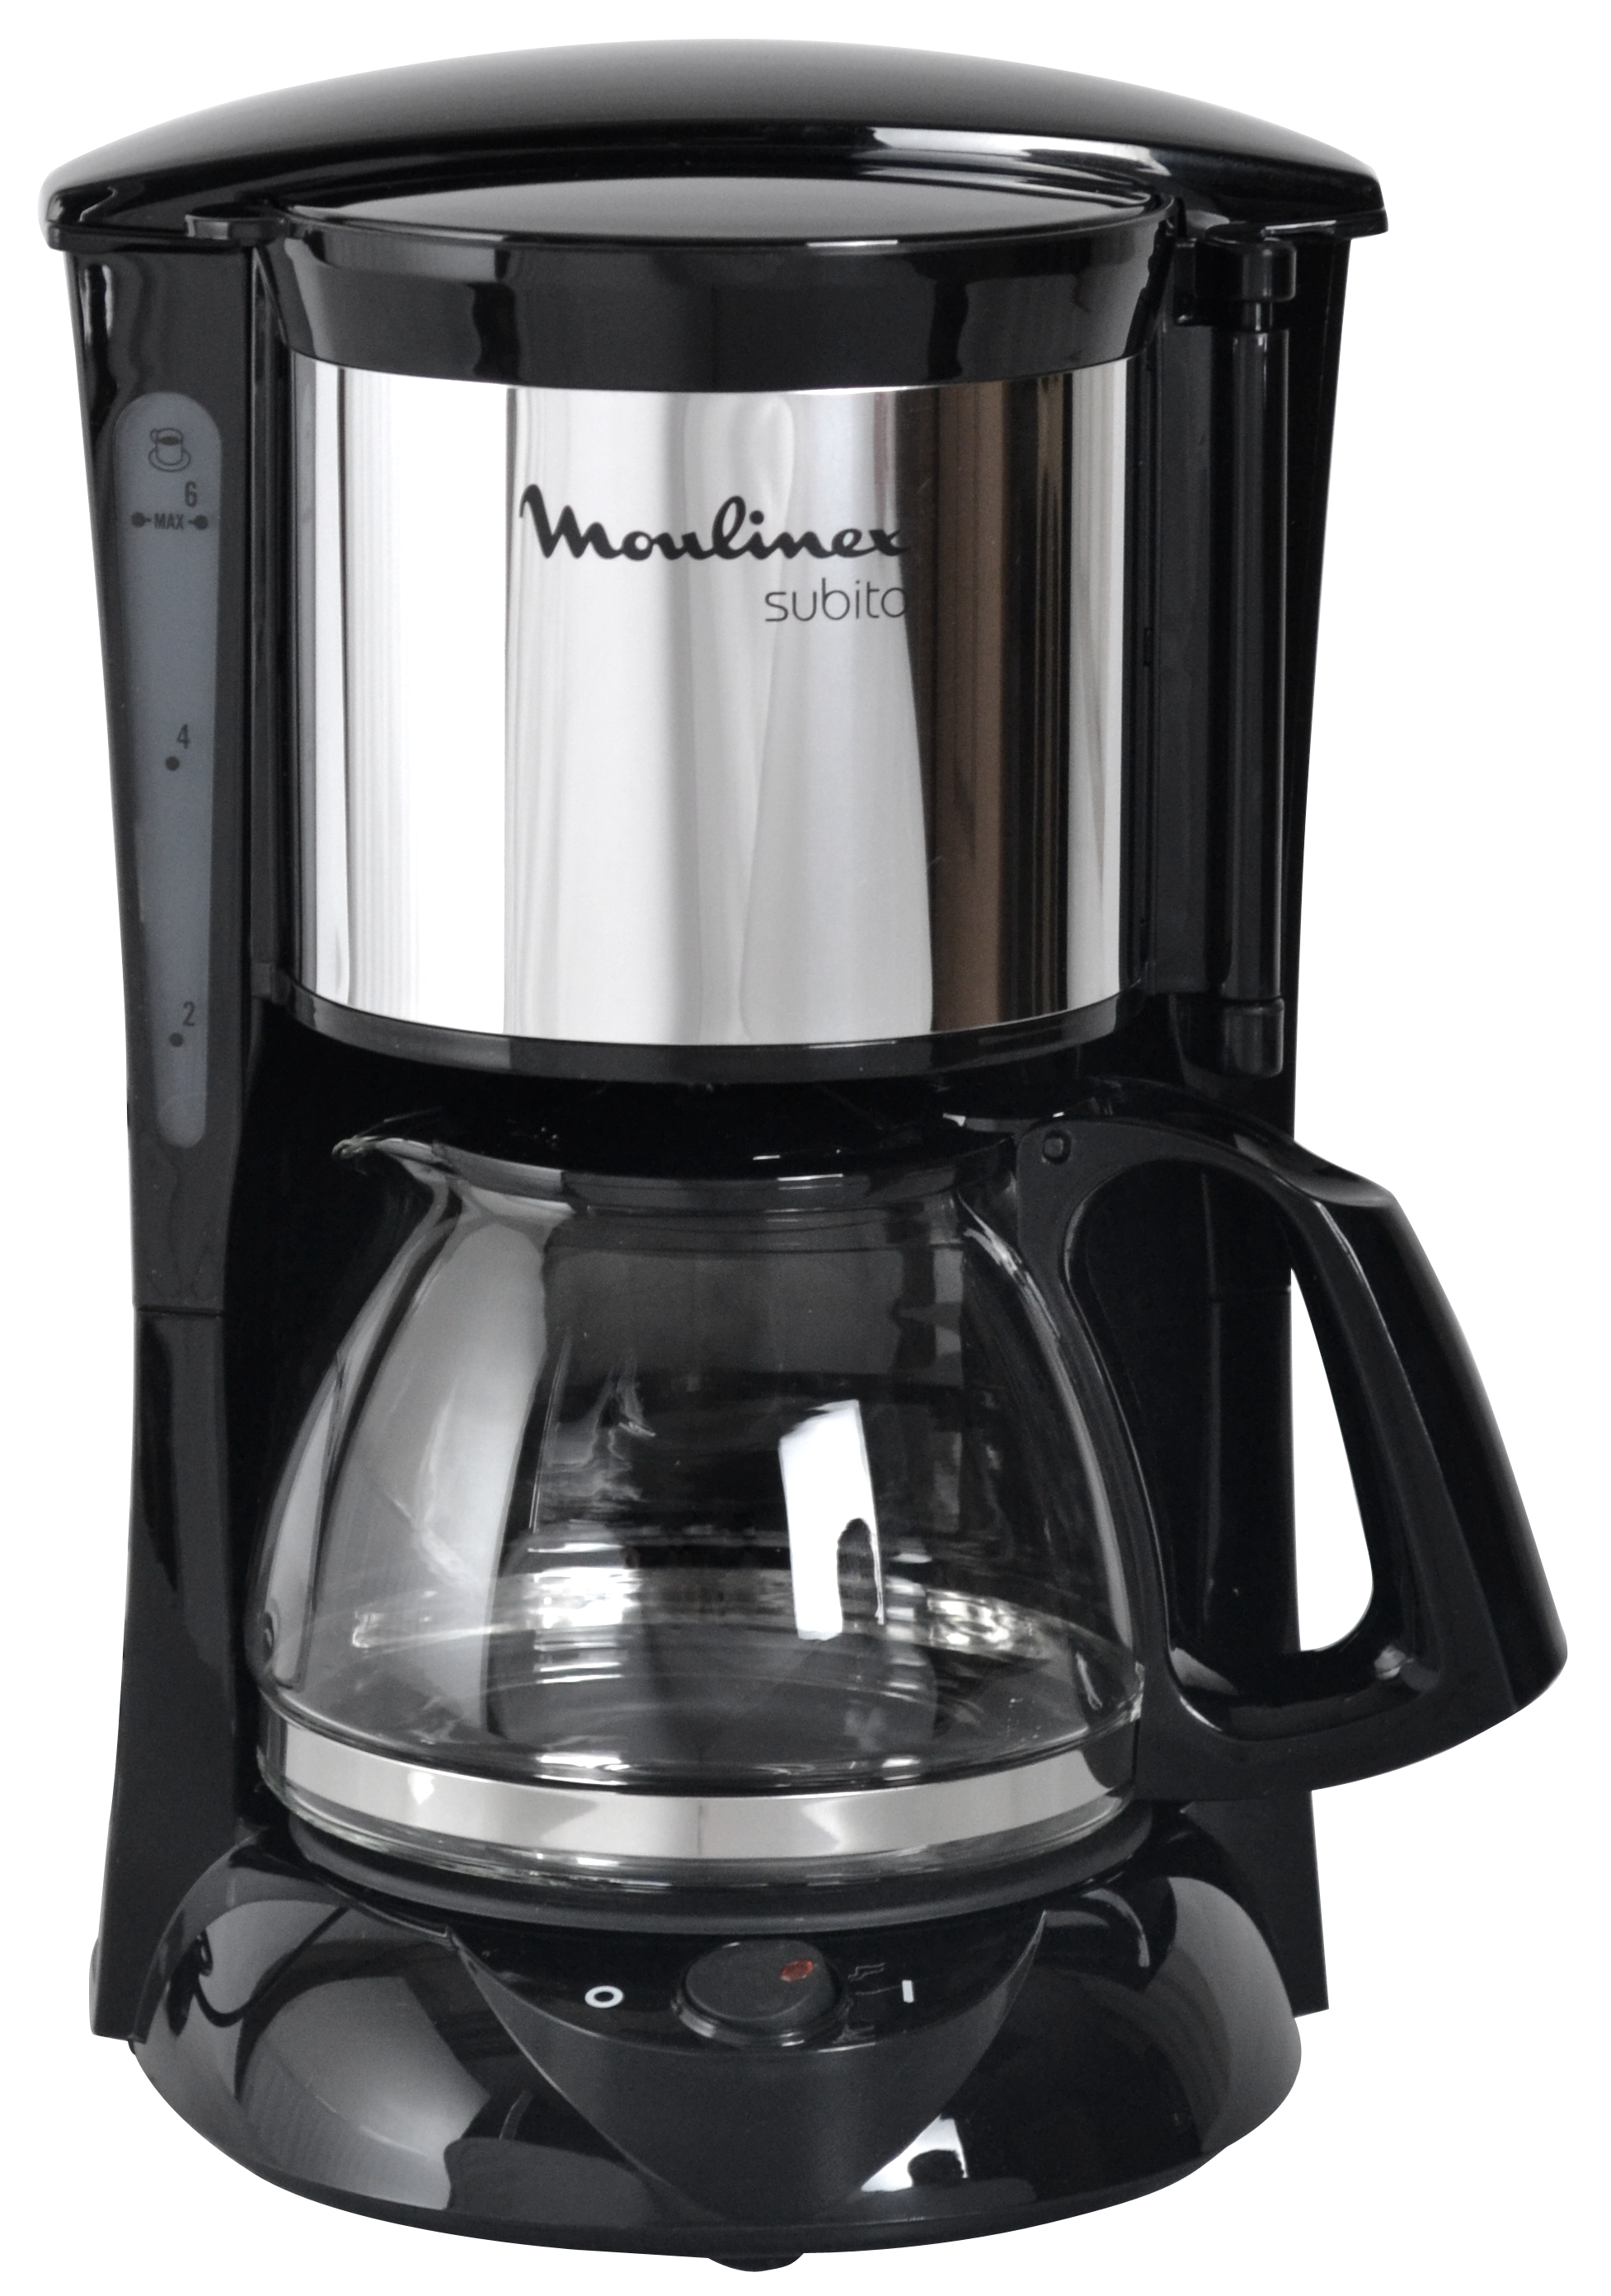 Coffee pot png. Machine images free download